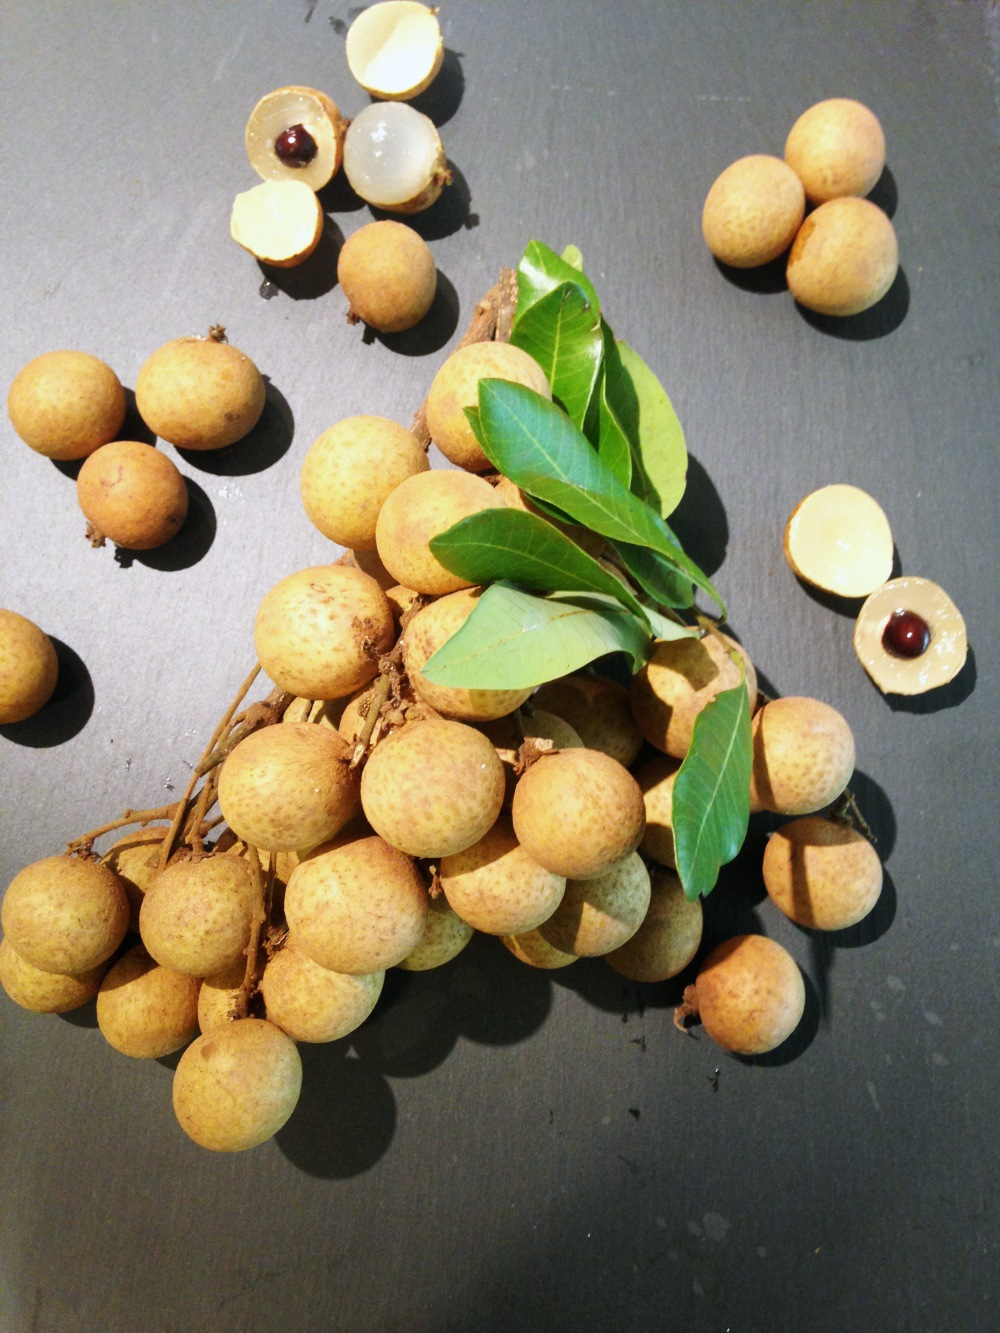 Longan Fruit photoshop